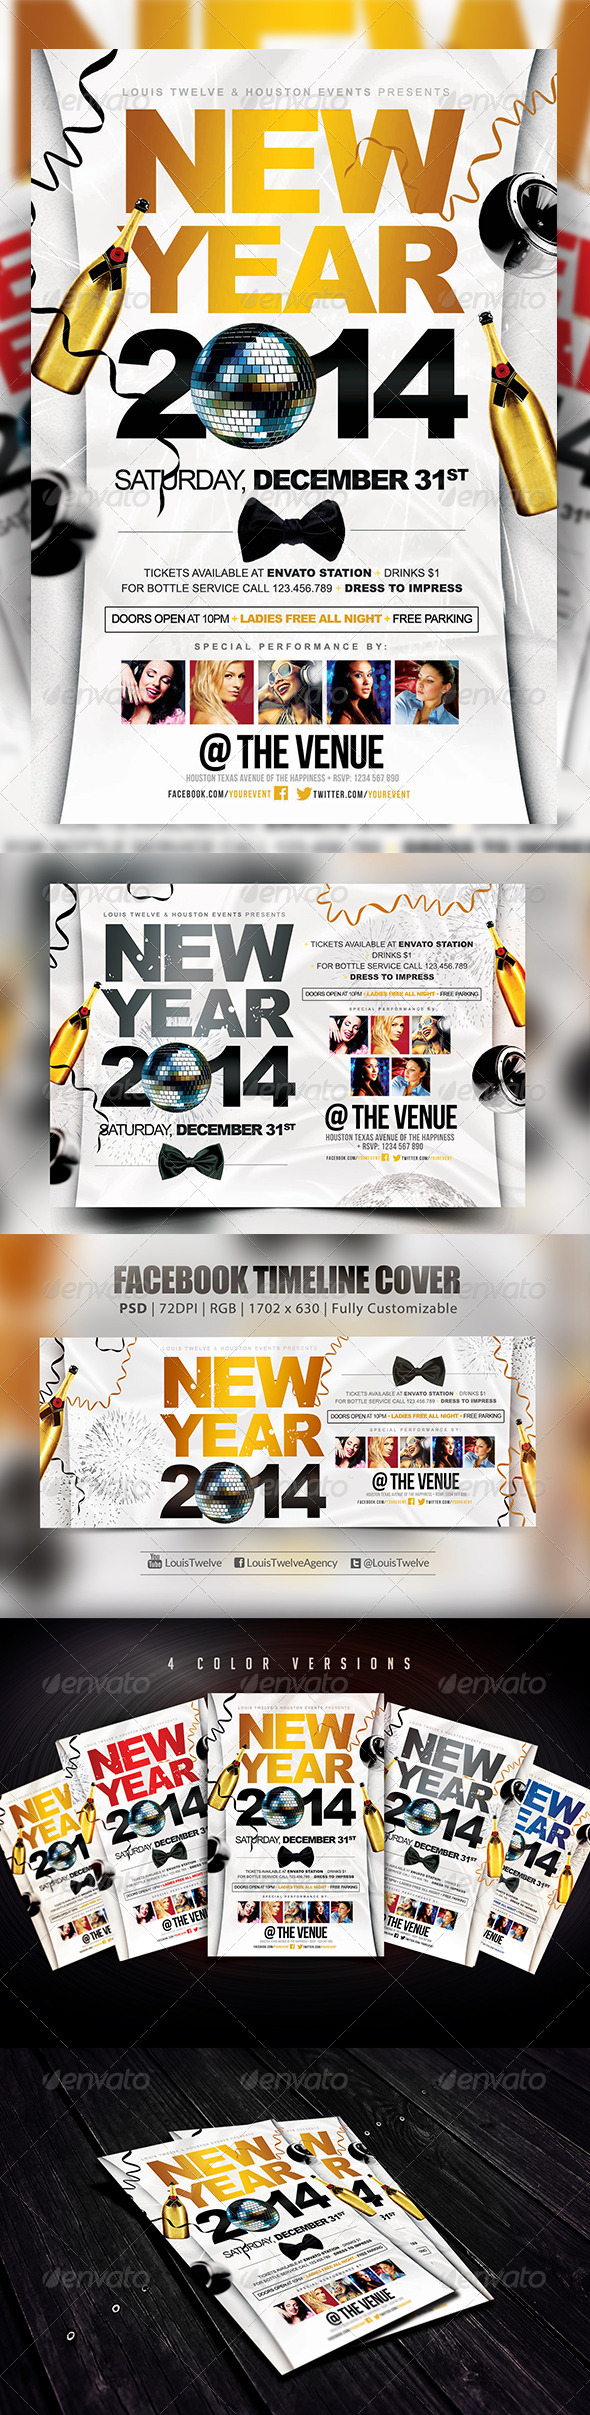 GraphicRiver New Year Party Flyers & FB Cover 5966769